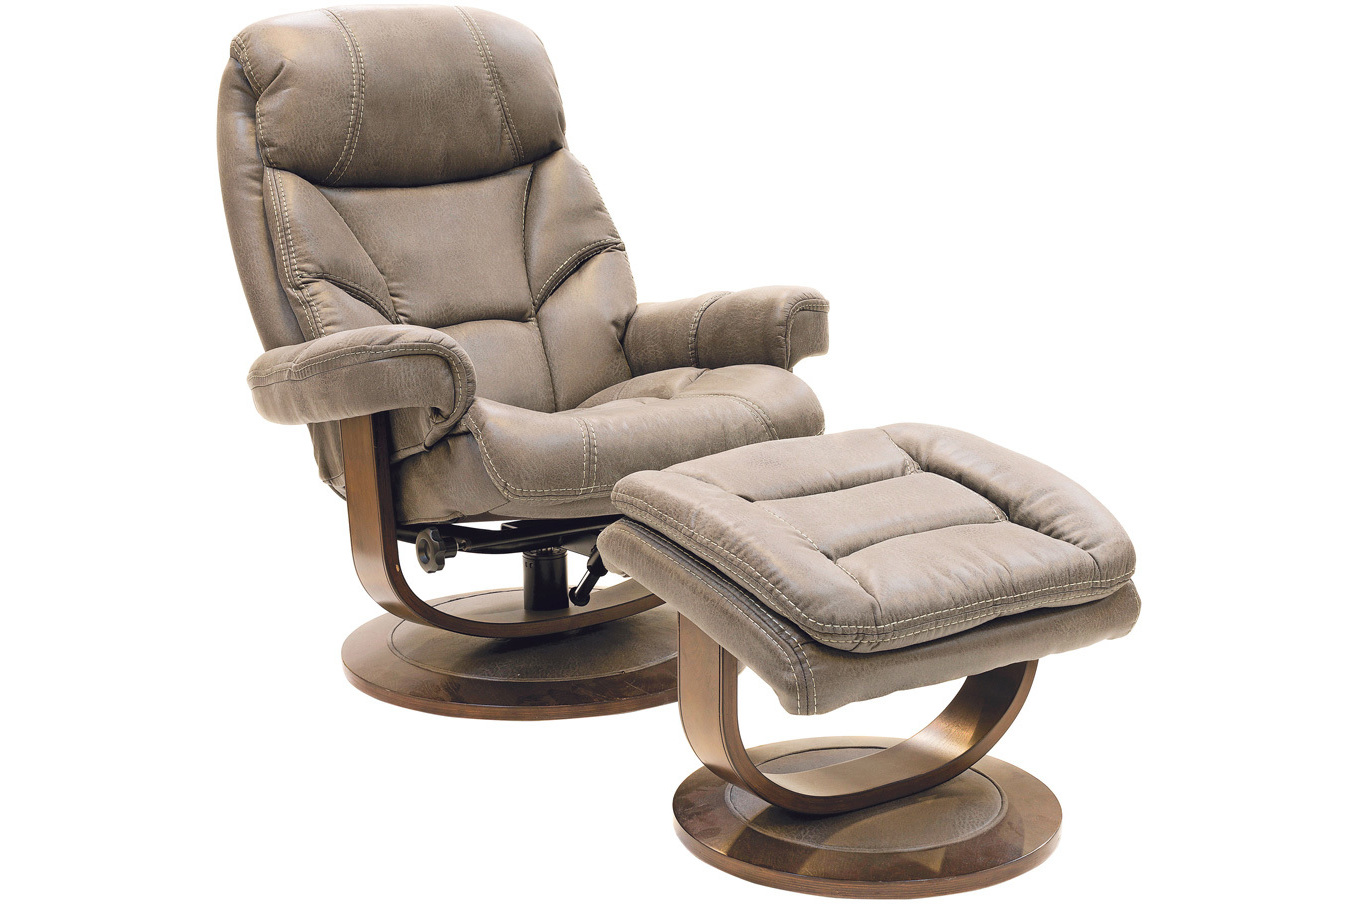 swivel chair harvey norman nils cover pattern cayenne recliner with footstool ireland